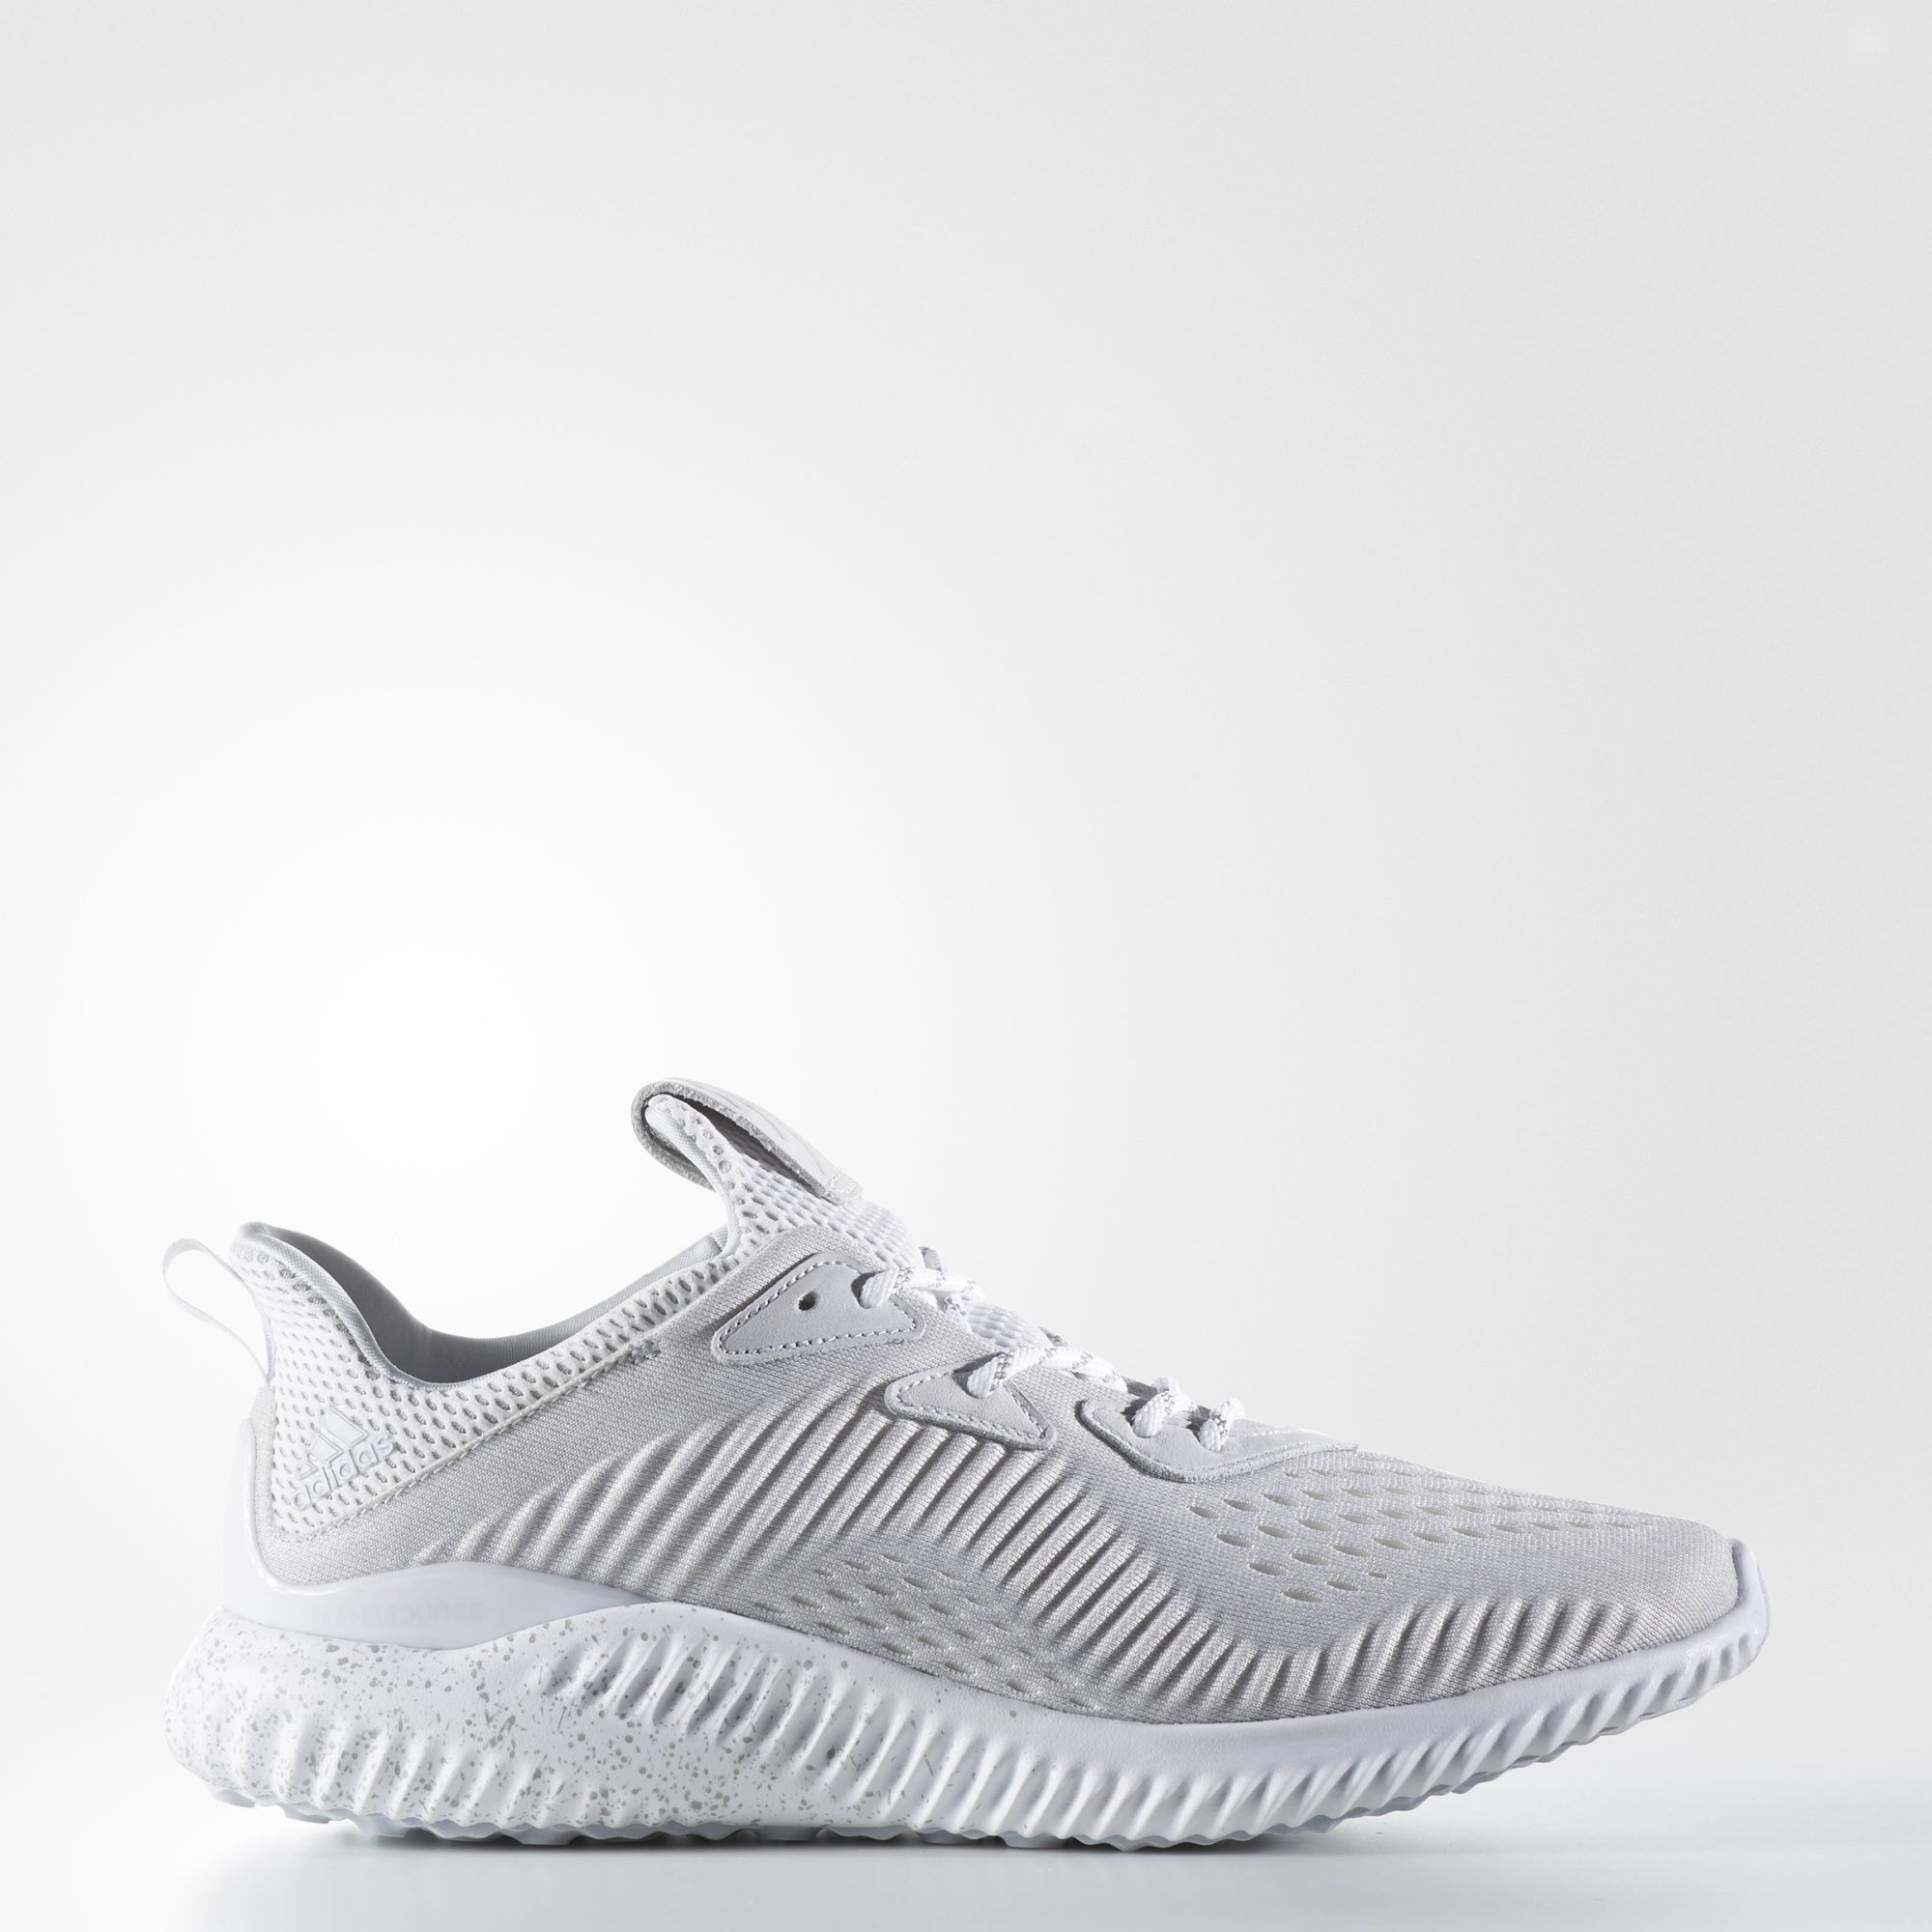 adidas alphabounce Reigning Champ Chaussures Chaussures Pinterest